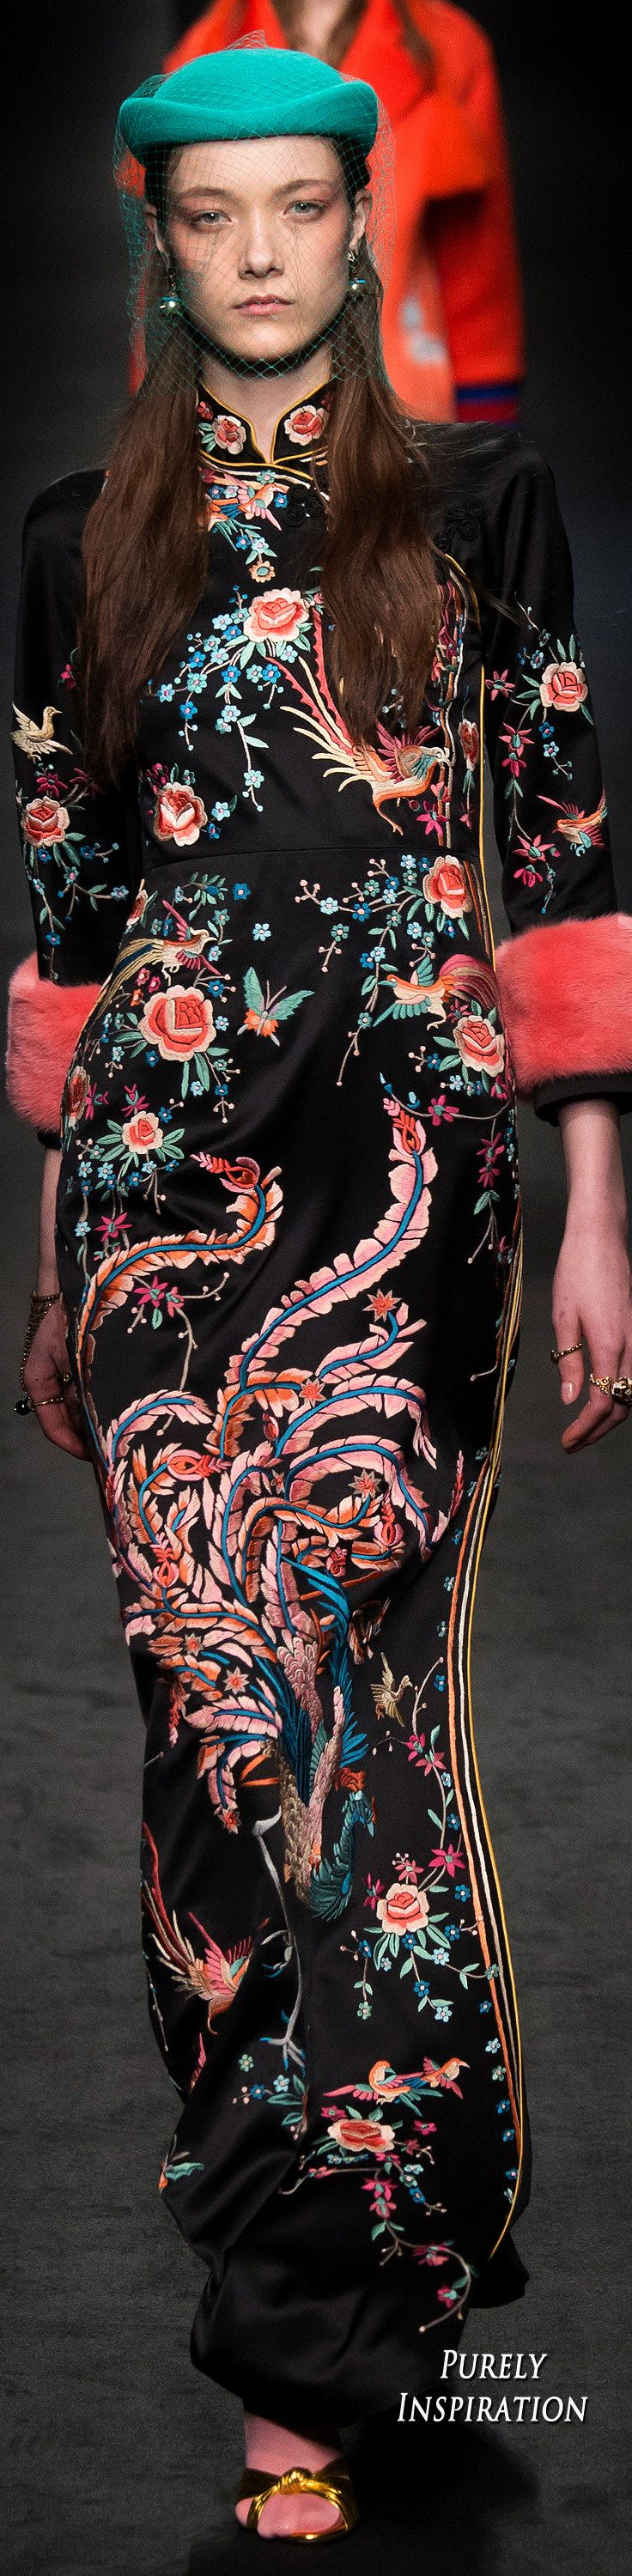 Gucci FW2016 Women's Fashion RTW | Purely Inspiration